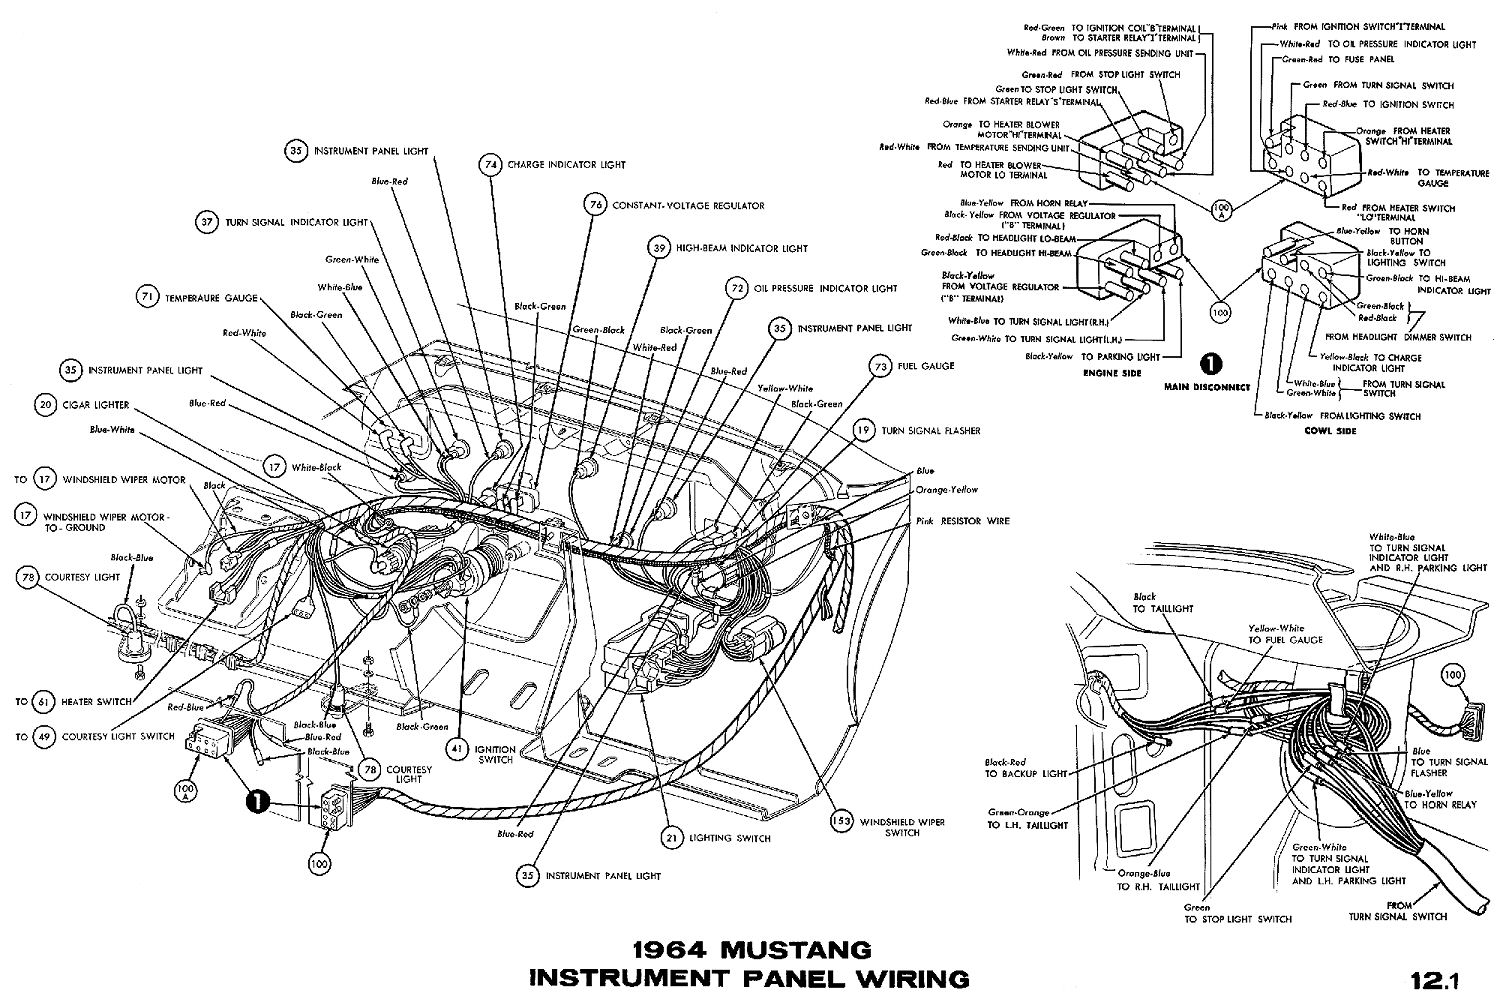 1964b 1964 mustang wiring diagrams average joe restoration 1969 mustang wiring diagram at honlapkeszites.co